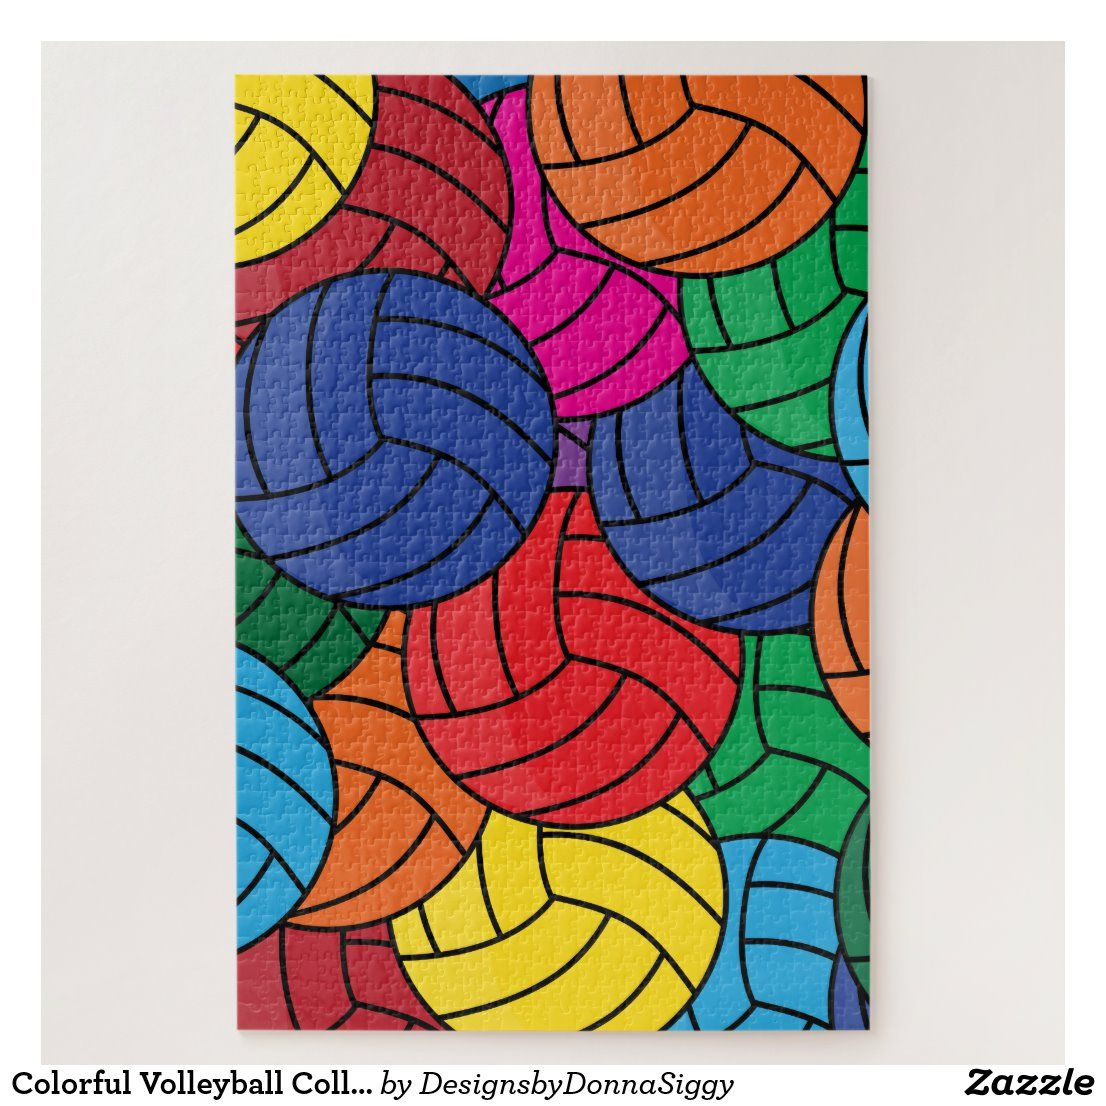 Colorful Volleyball Collage Jigsaw Puzzle Zazzle Com Family Game Night Custom Puzzle Jigsaw Puzzles